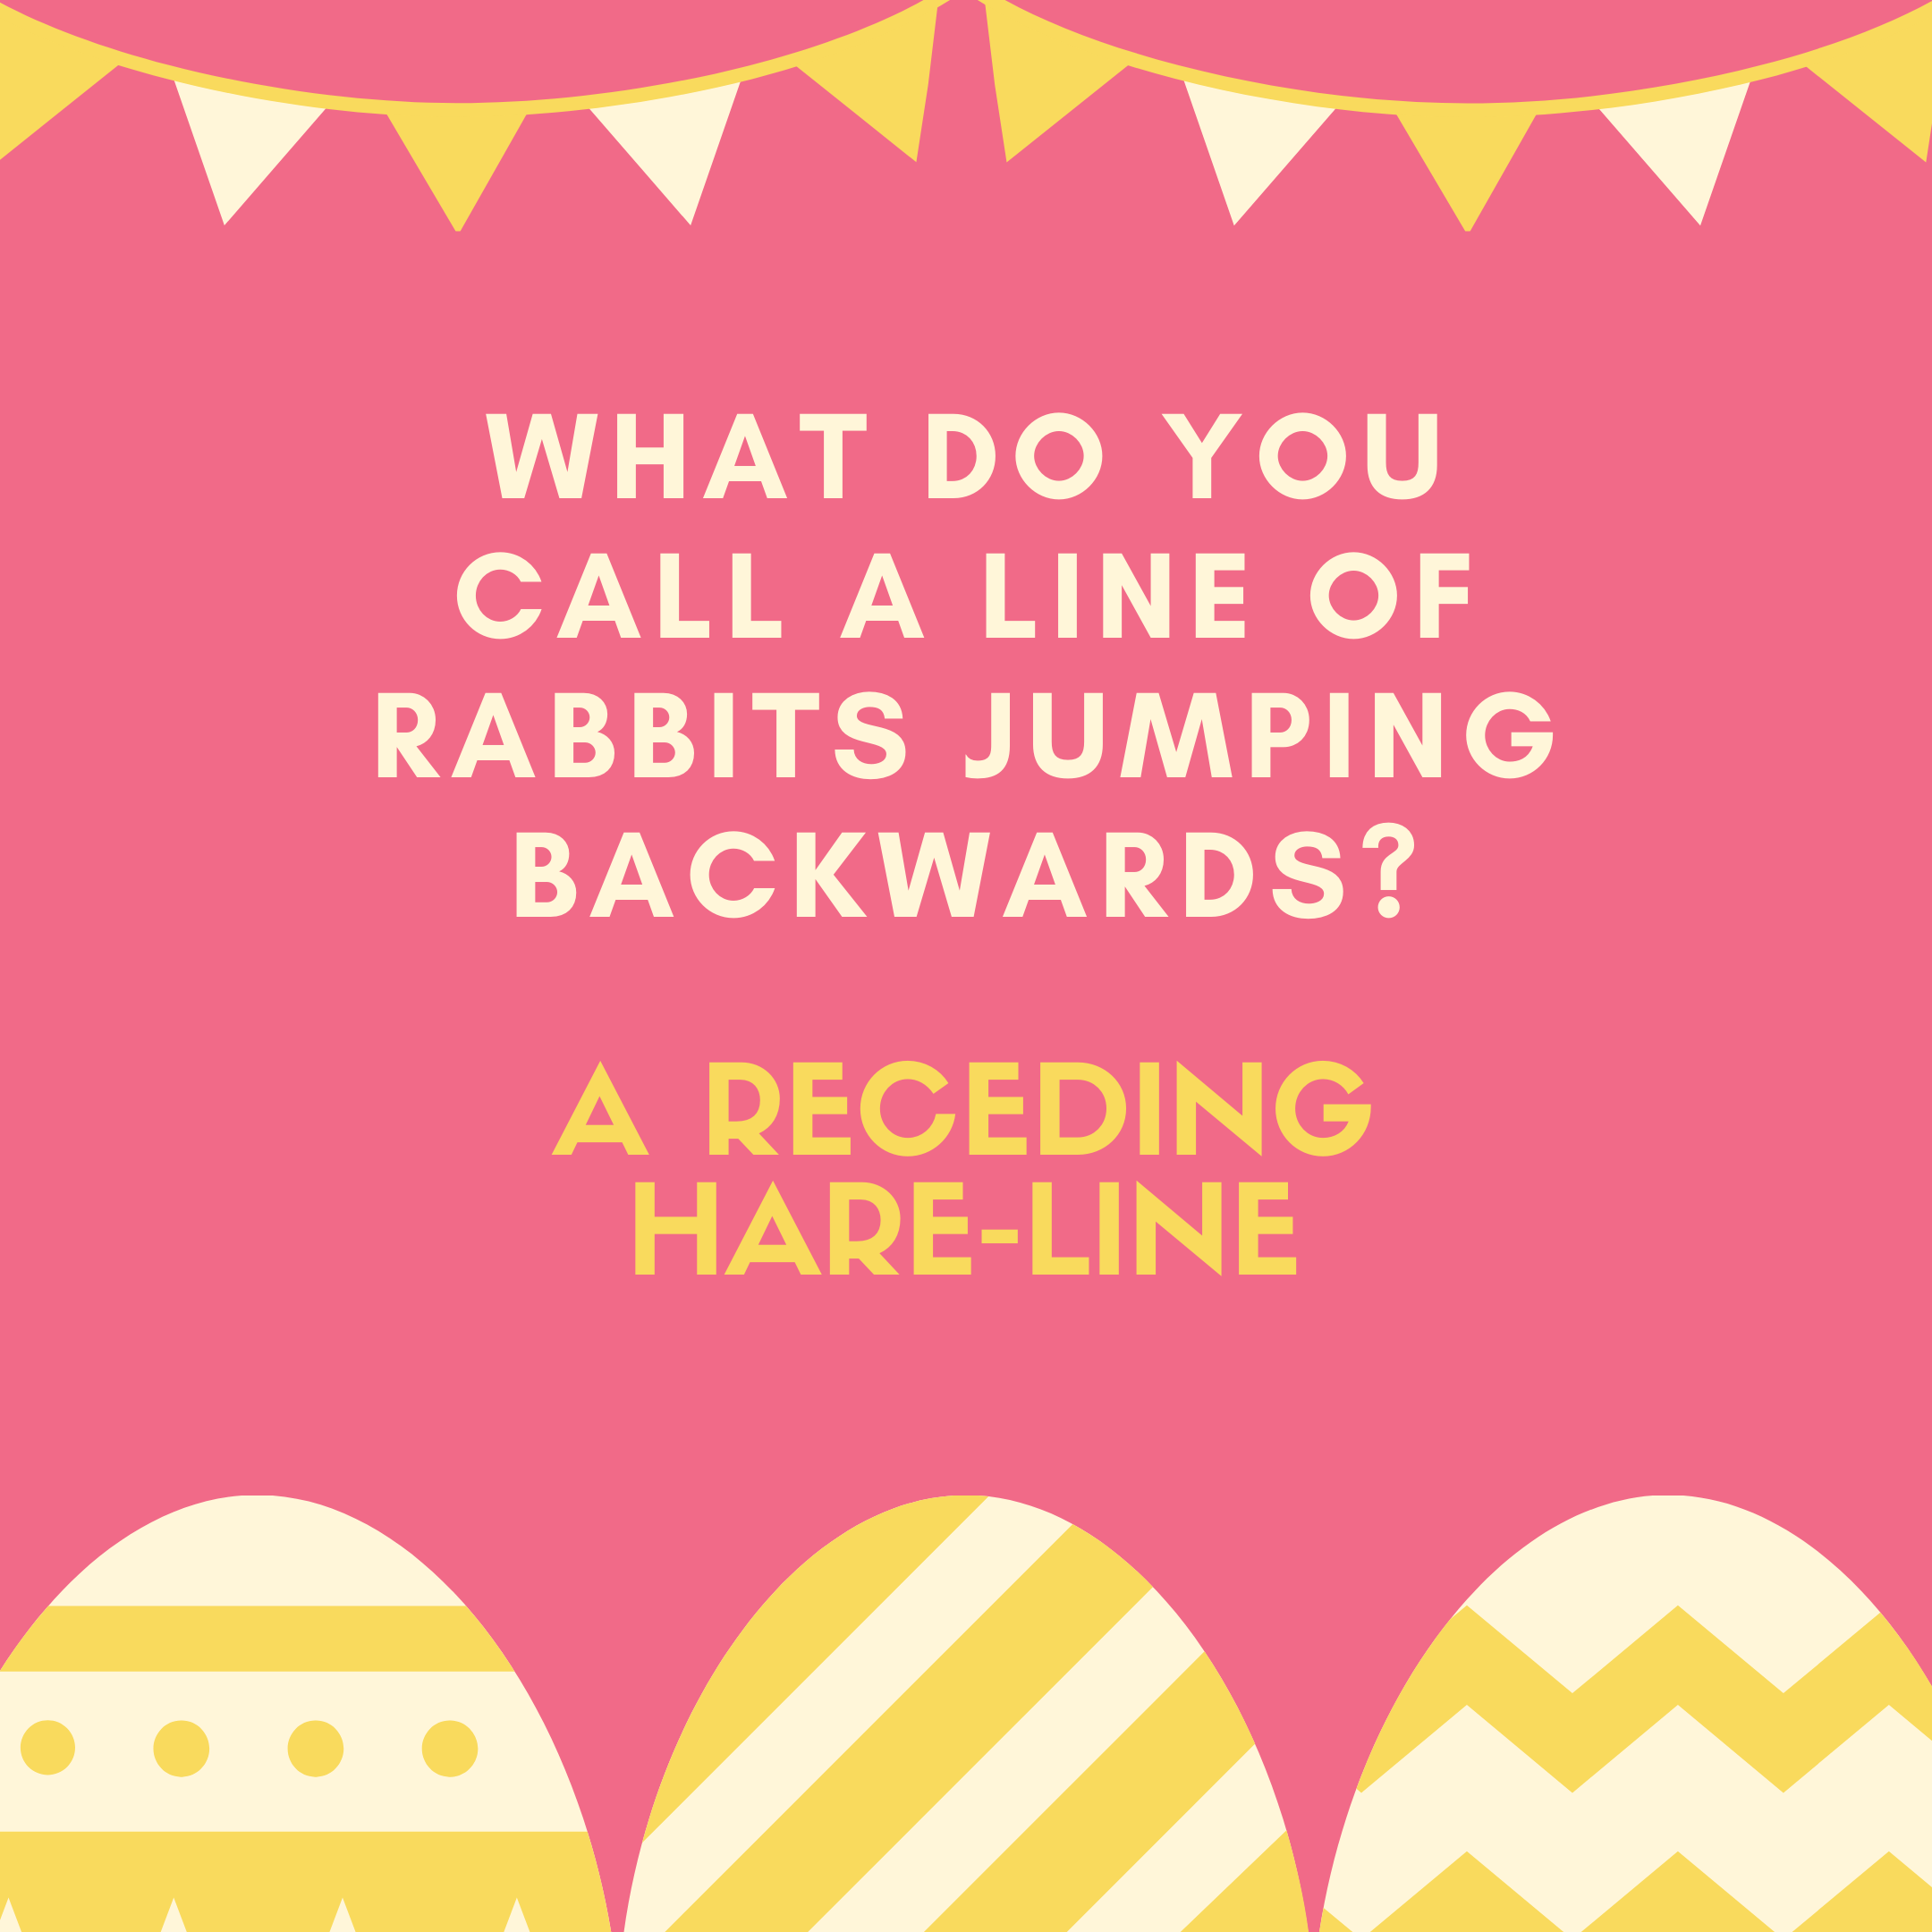 What do you call a line of rabbits jumping backwards? A receding hare-line